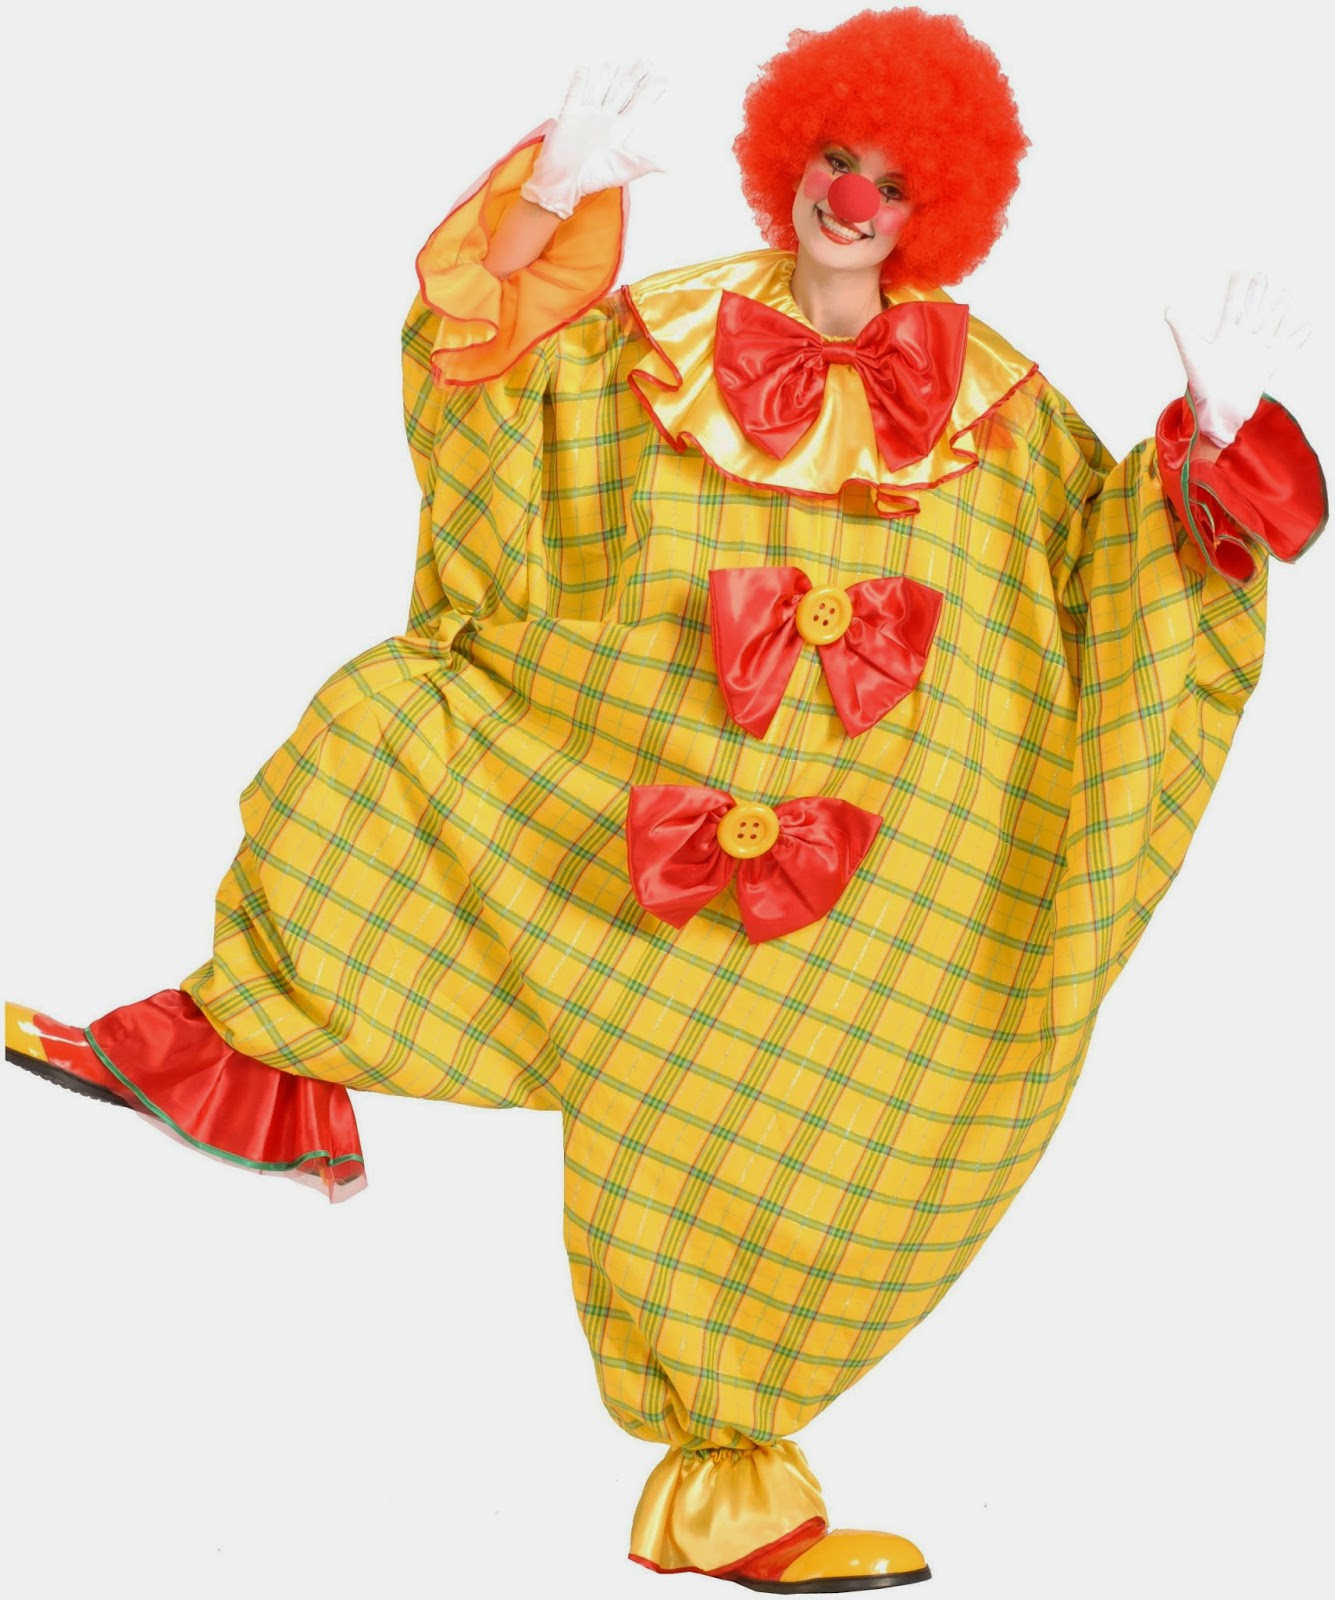 strechy-the-clown-adult-costume